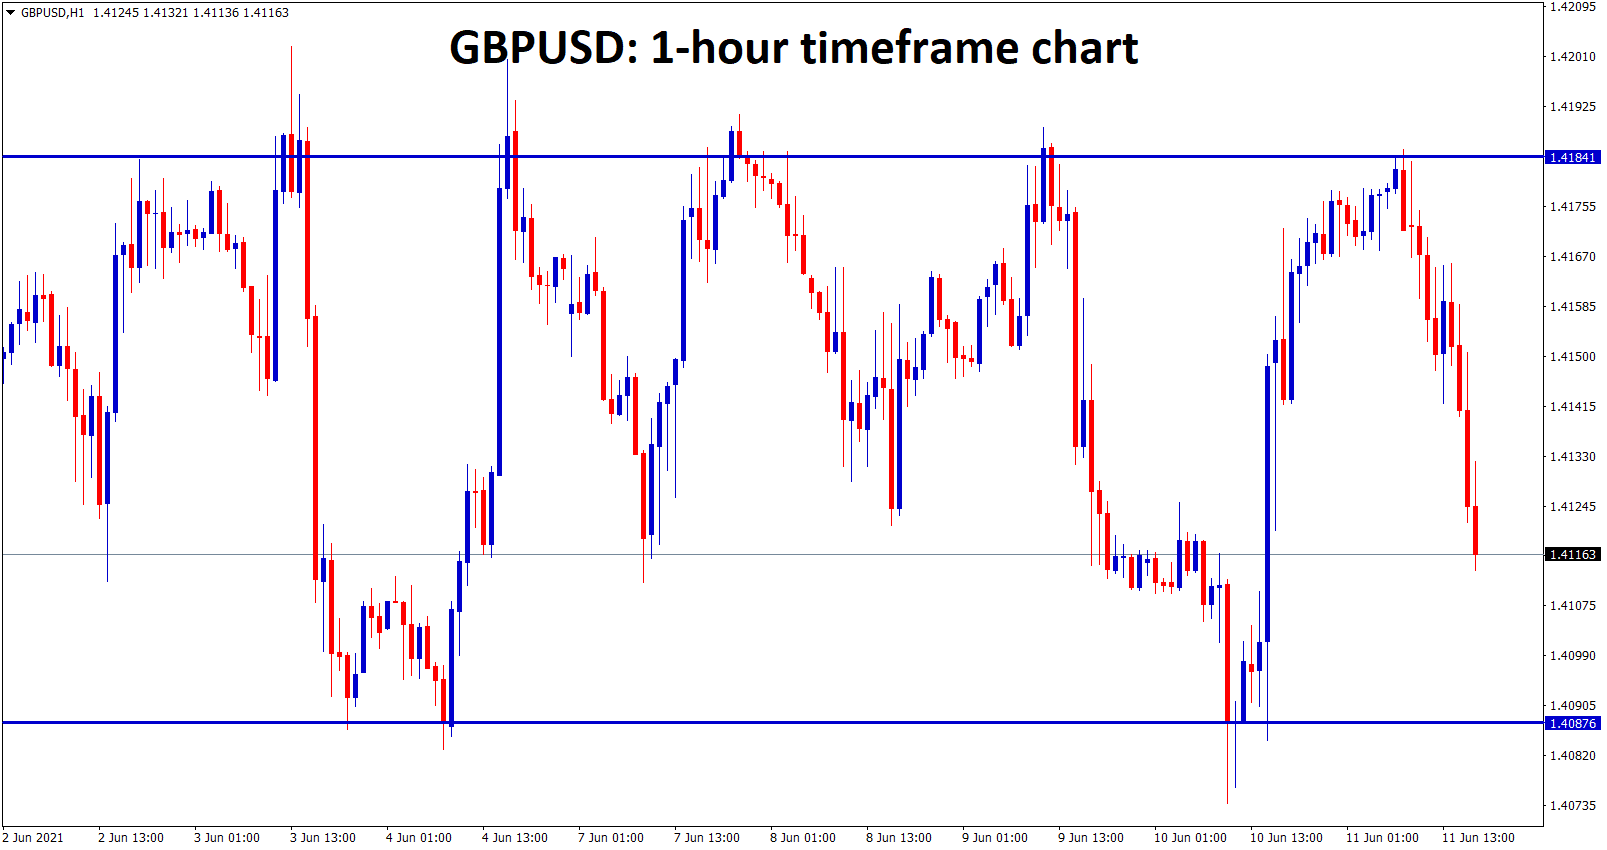 GBPUSD is moving up and down between the resistance and support level